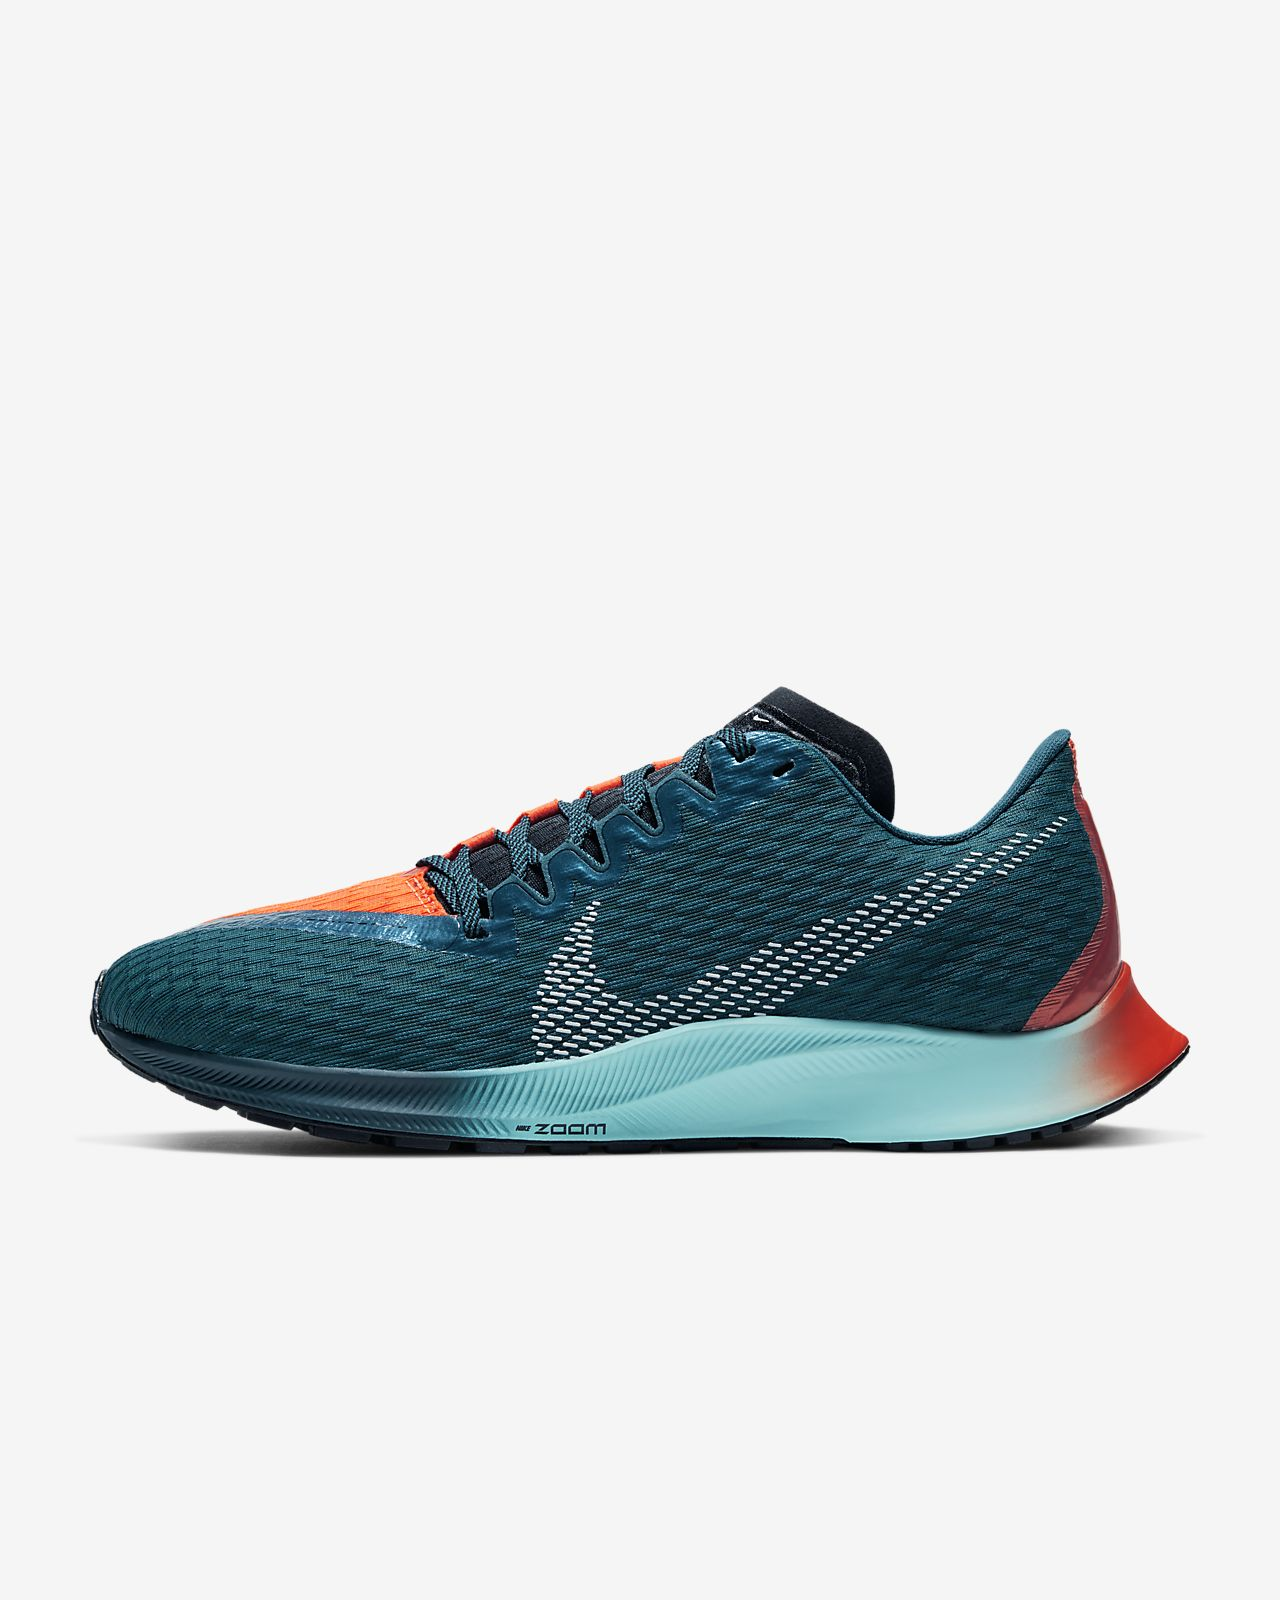 NIKE Official]Nike Zoom Rival Fly 2